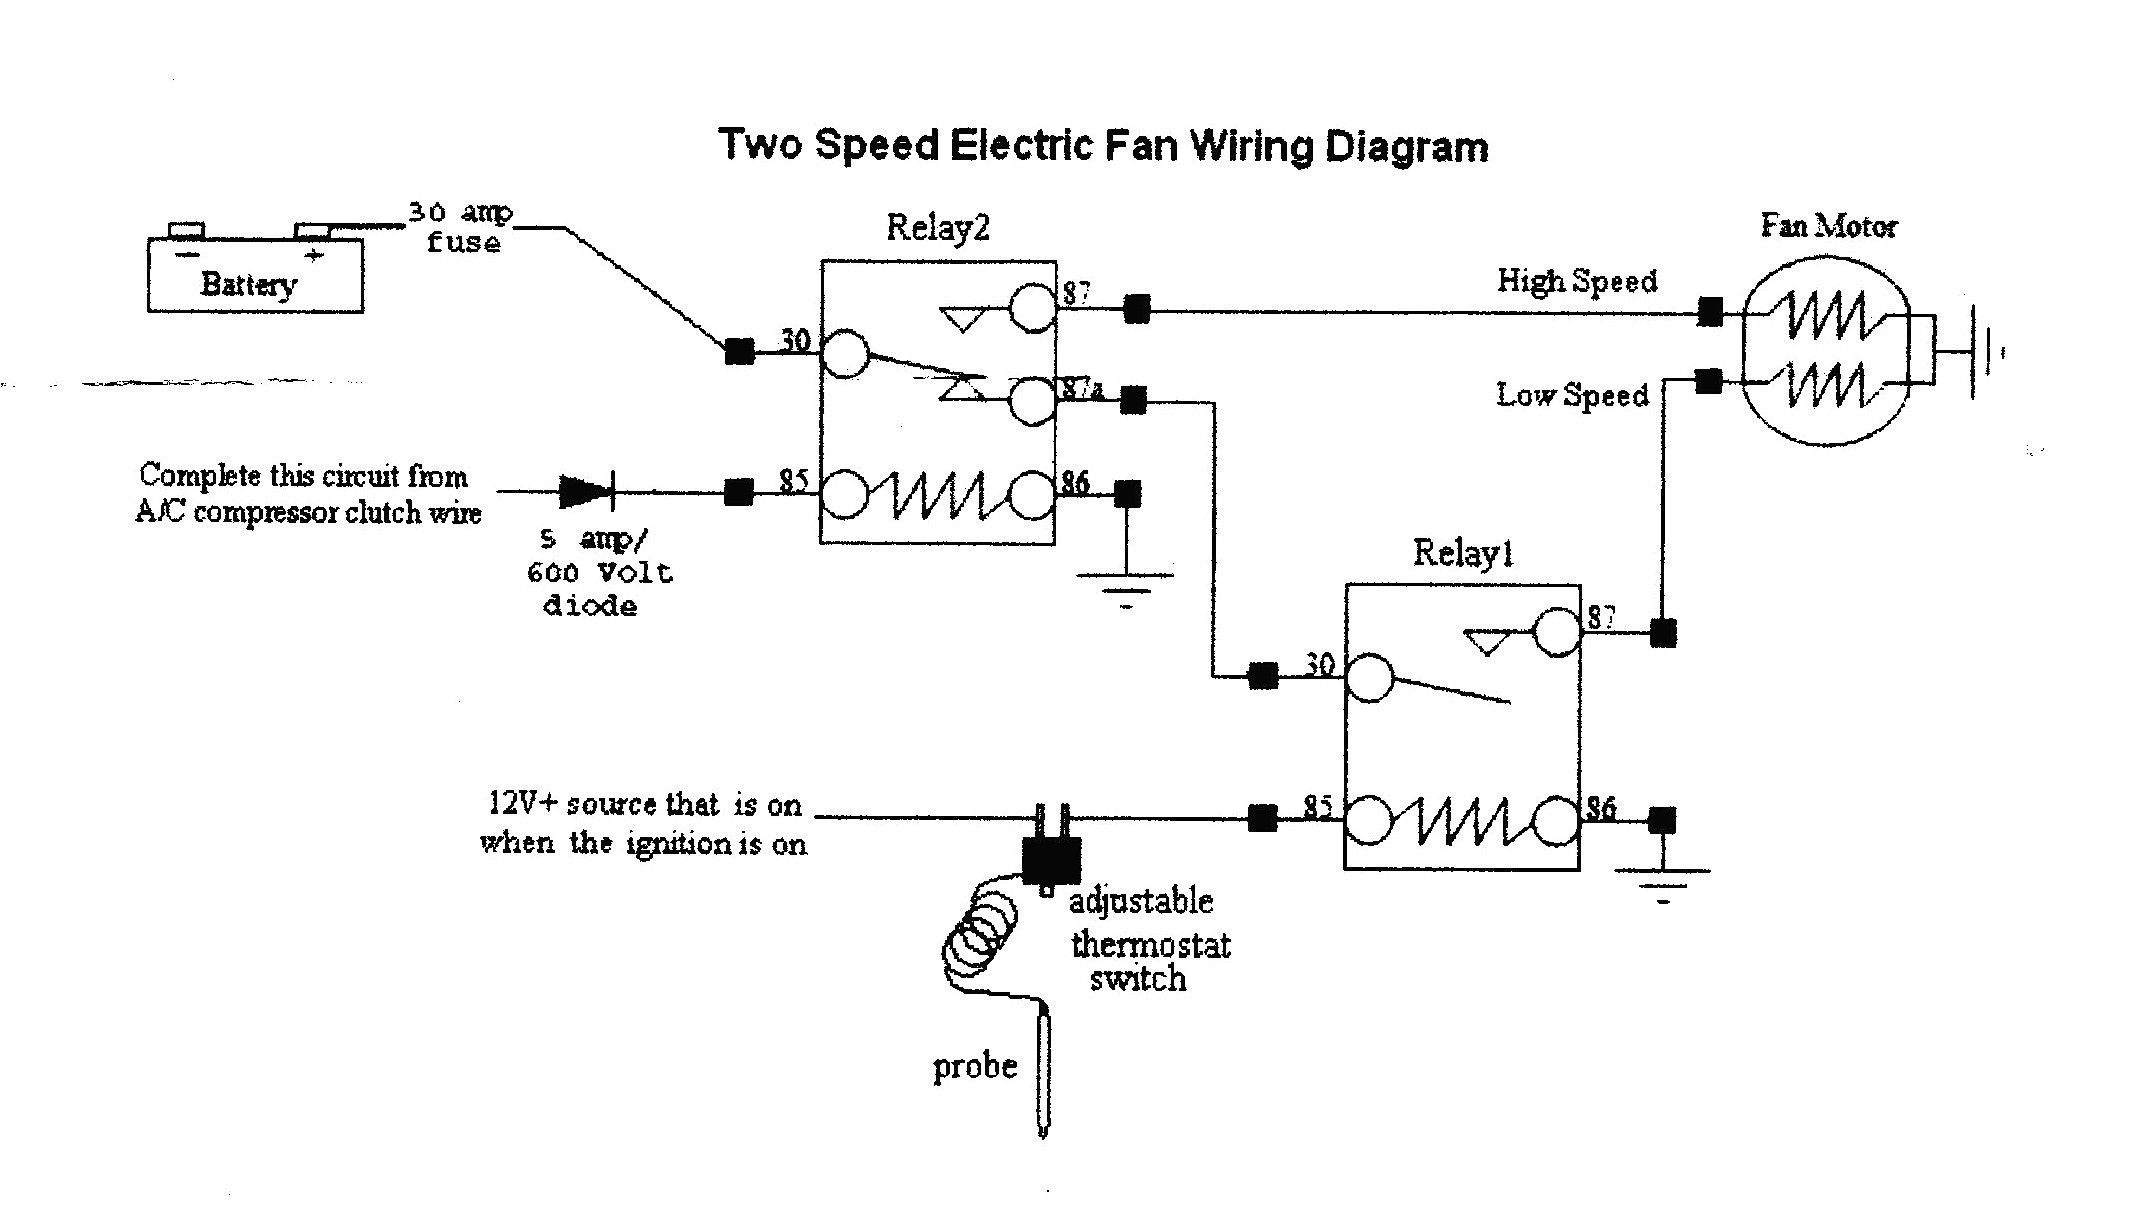 Unique Wiring Diagram For Electric Fan Relay Diagram Diagramsample Diagramtemplate Wiringdiagram Diagramchart W Thermostat Wiring Electric Fan Thermostat